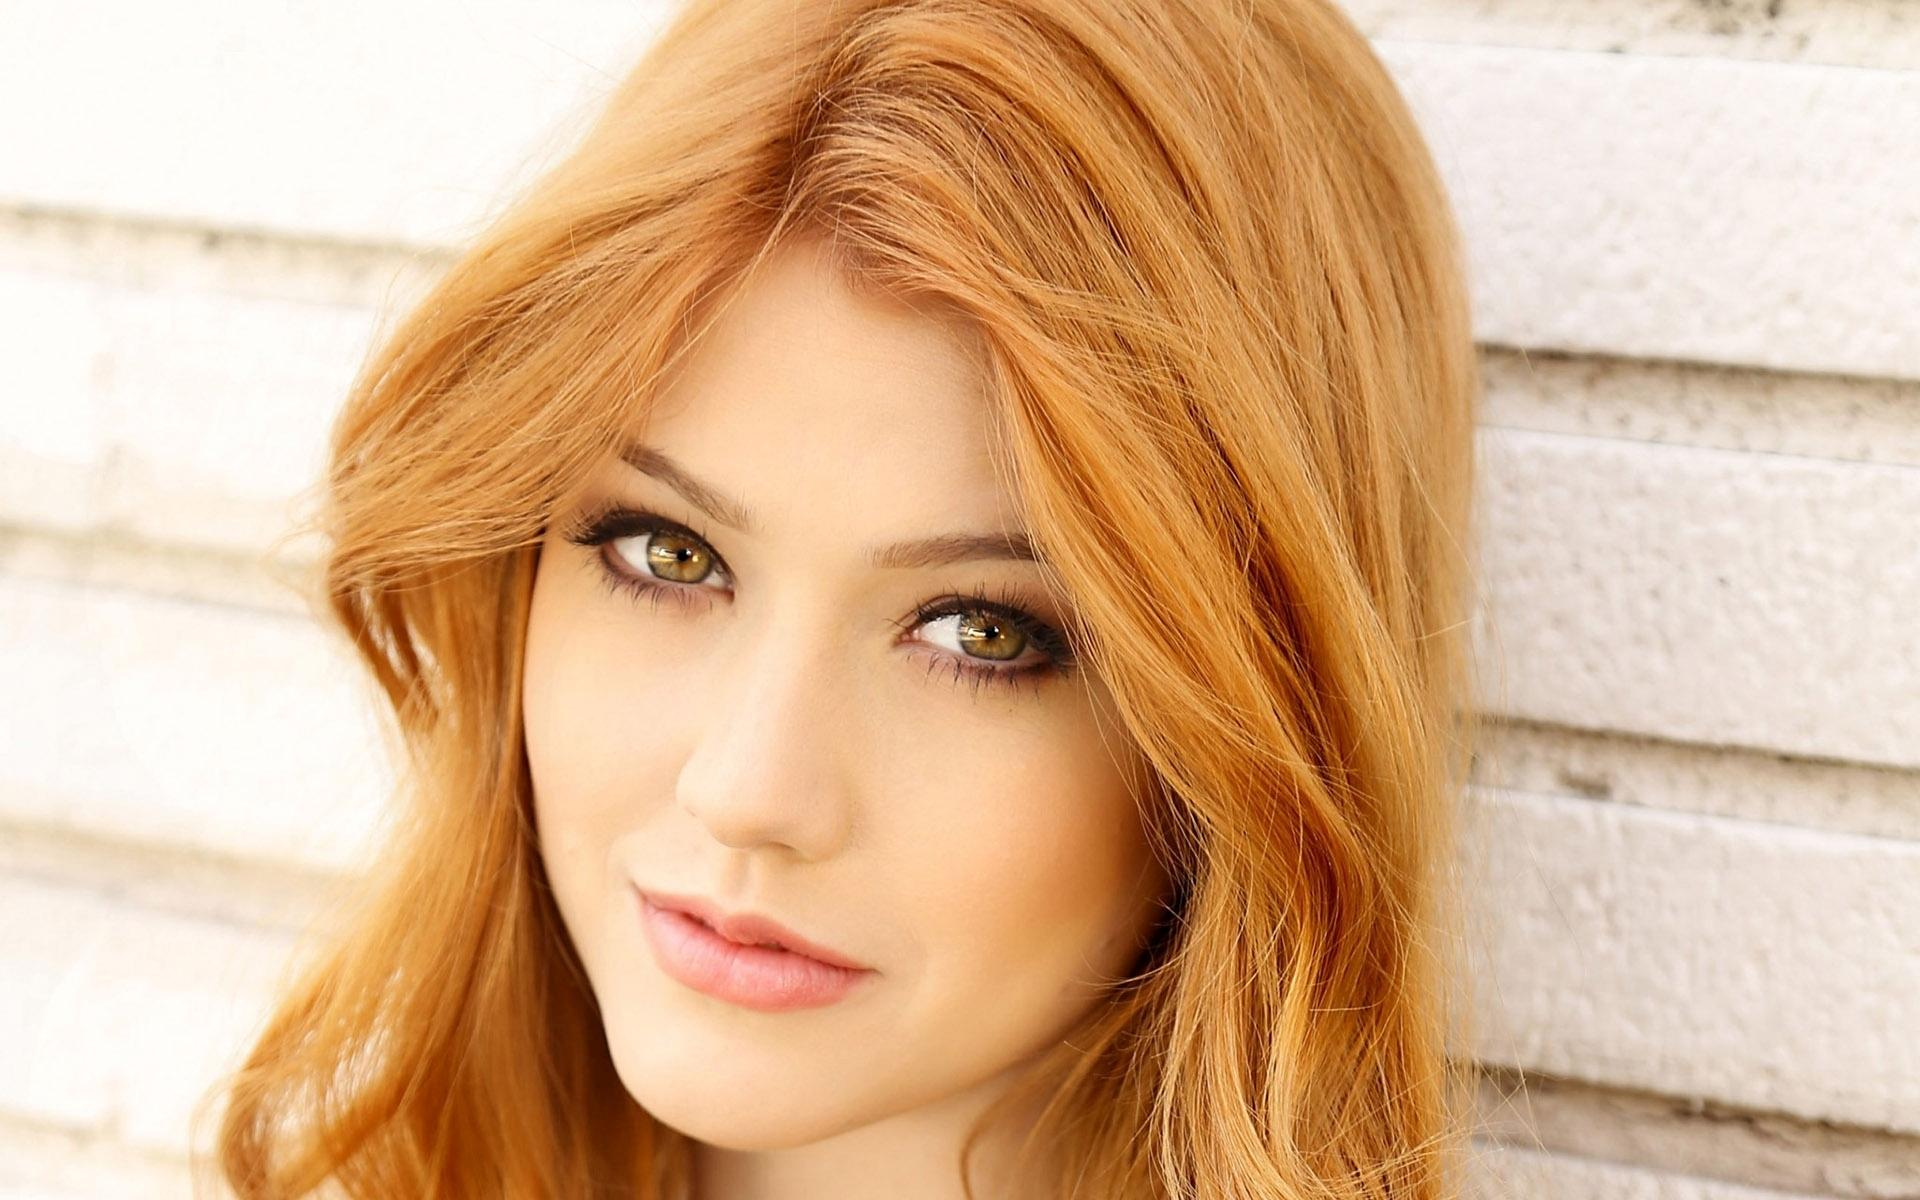 katherine mcnamara makeup wallpaper 55132